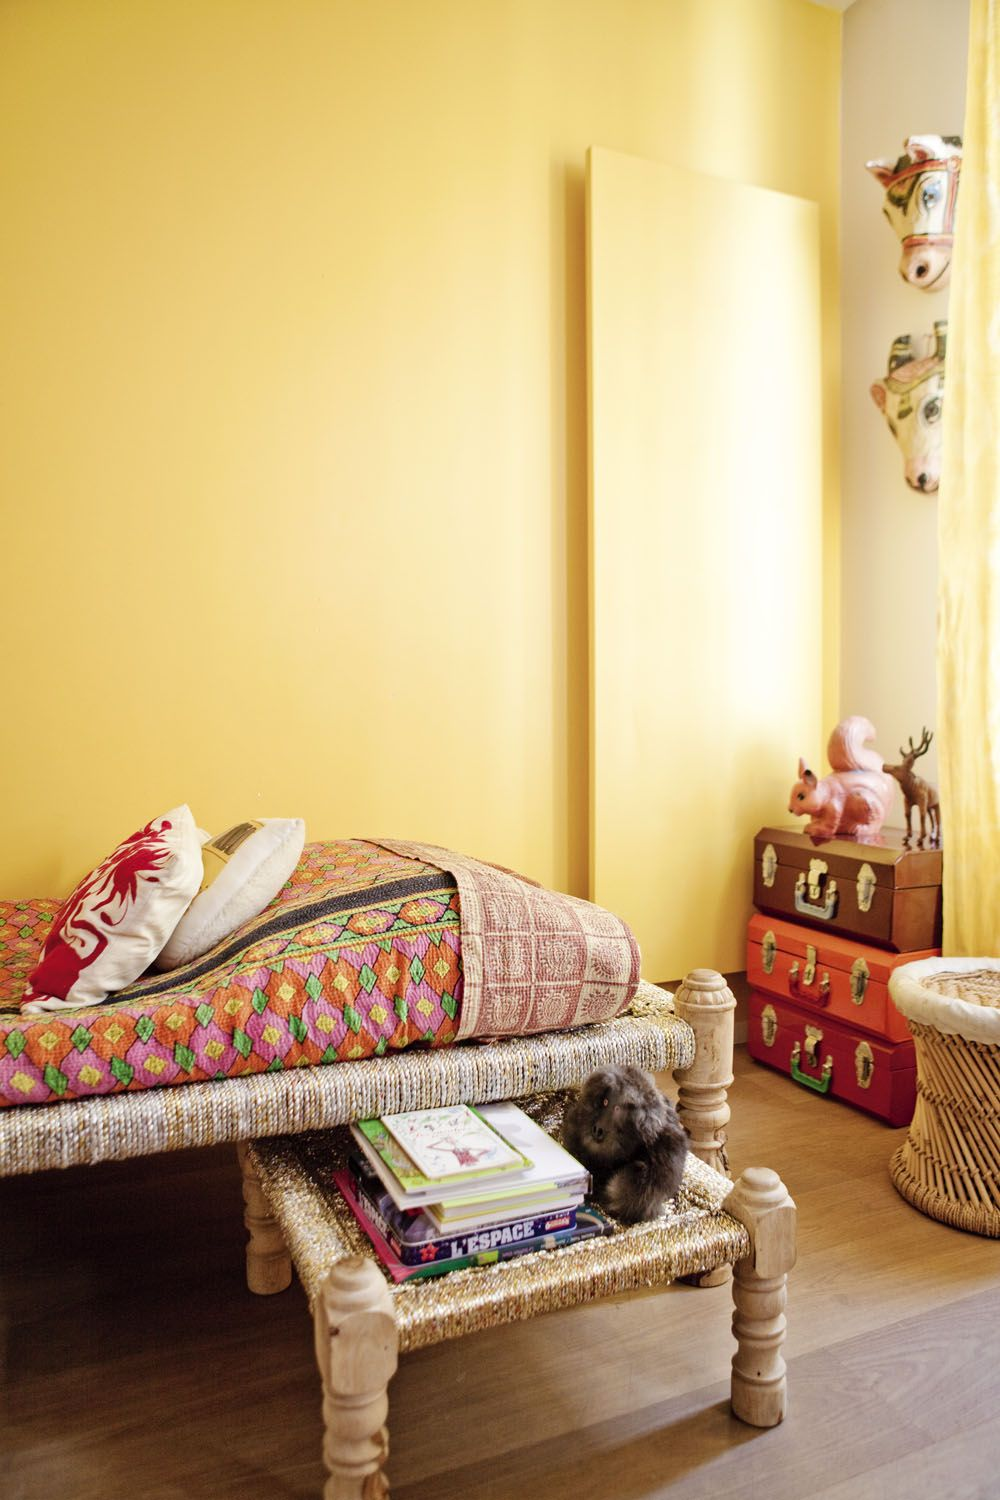 Paris : french bollywood in 2018 | Room Ideas | Pinterest | Yellow ...